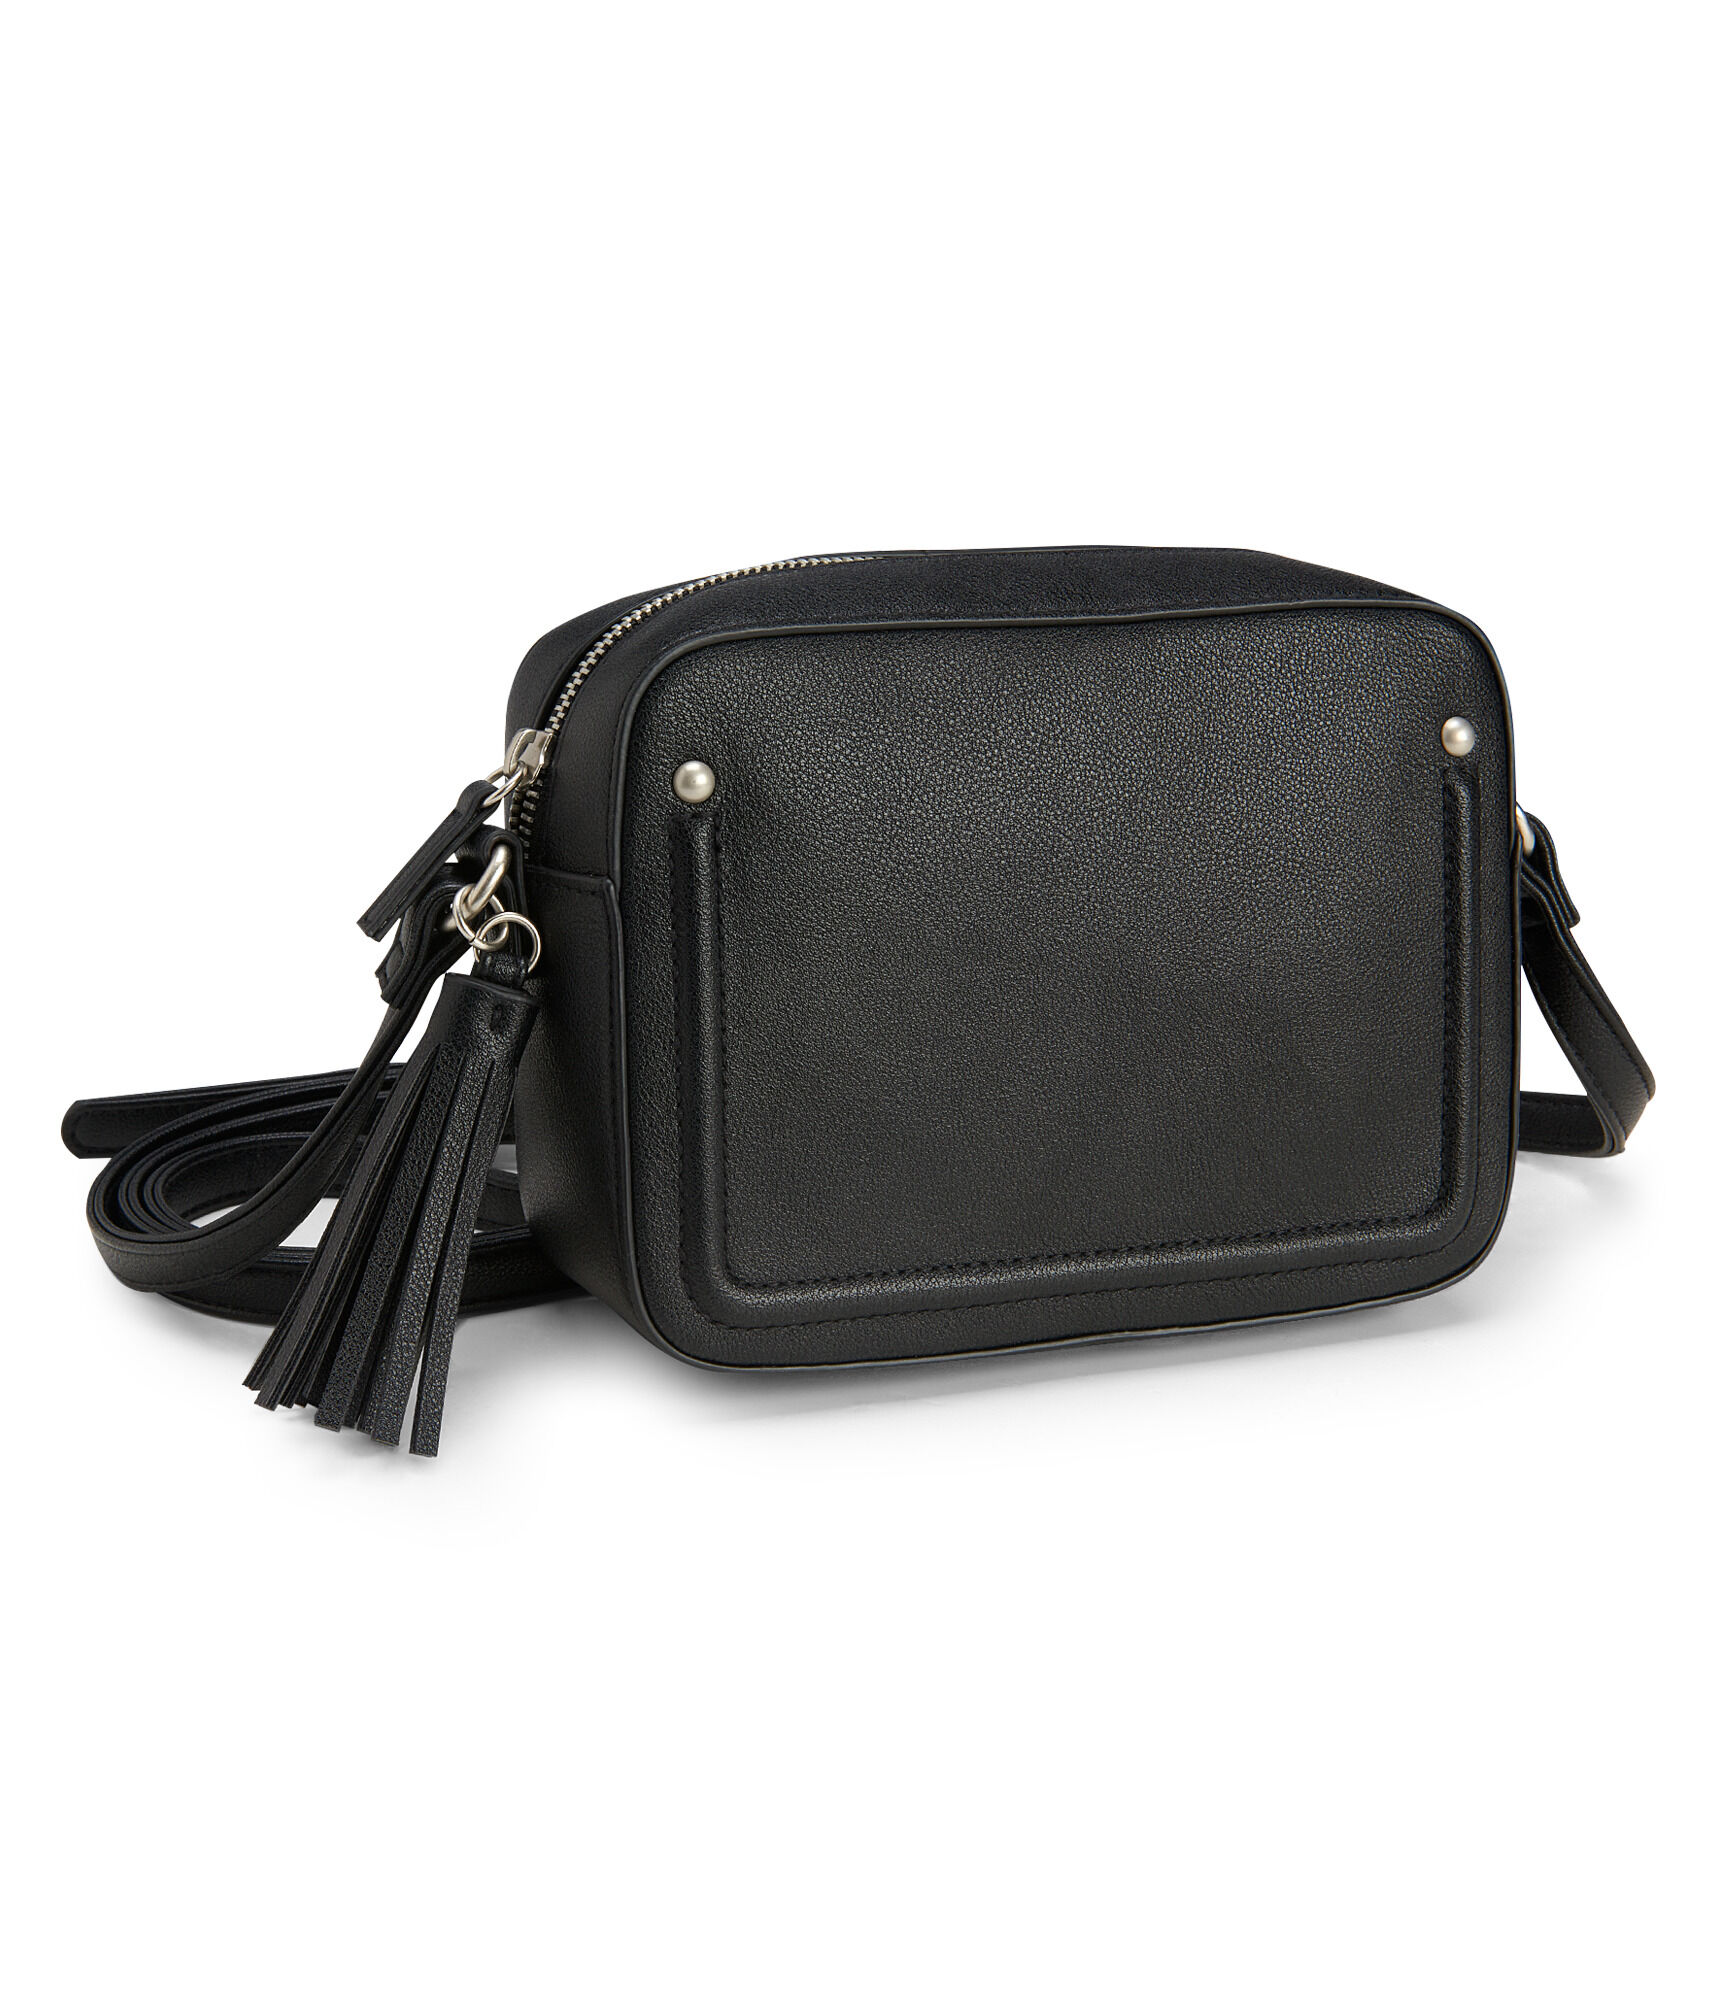 d0f788fc2c3 Tassel Camera Bag